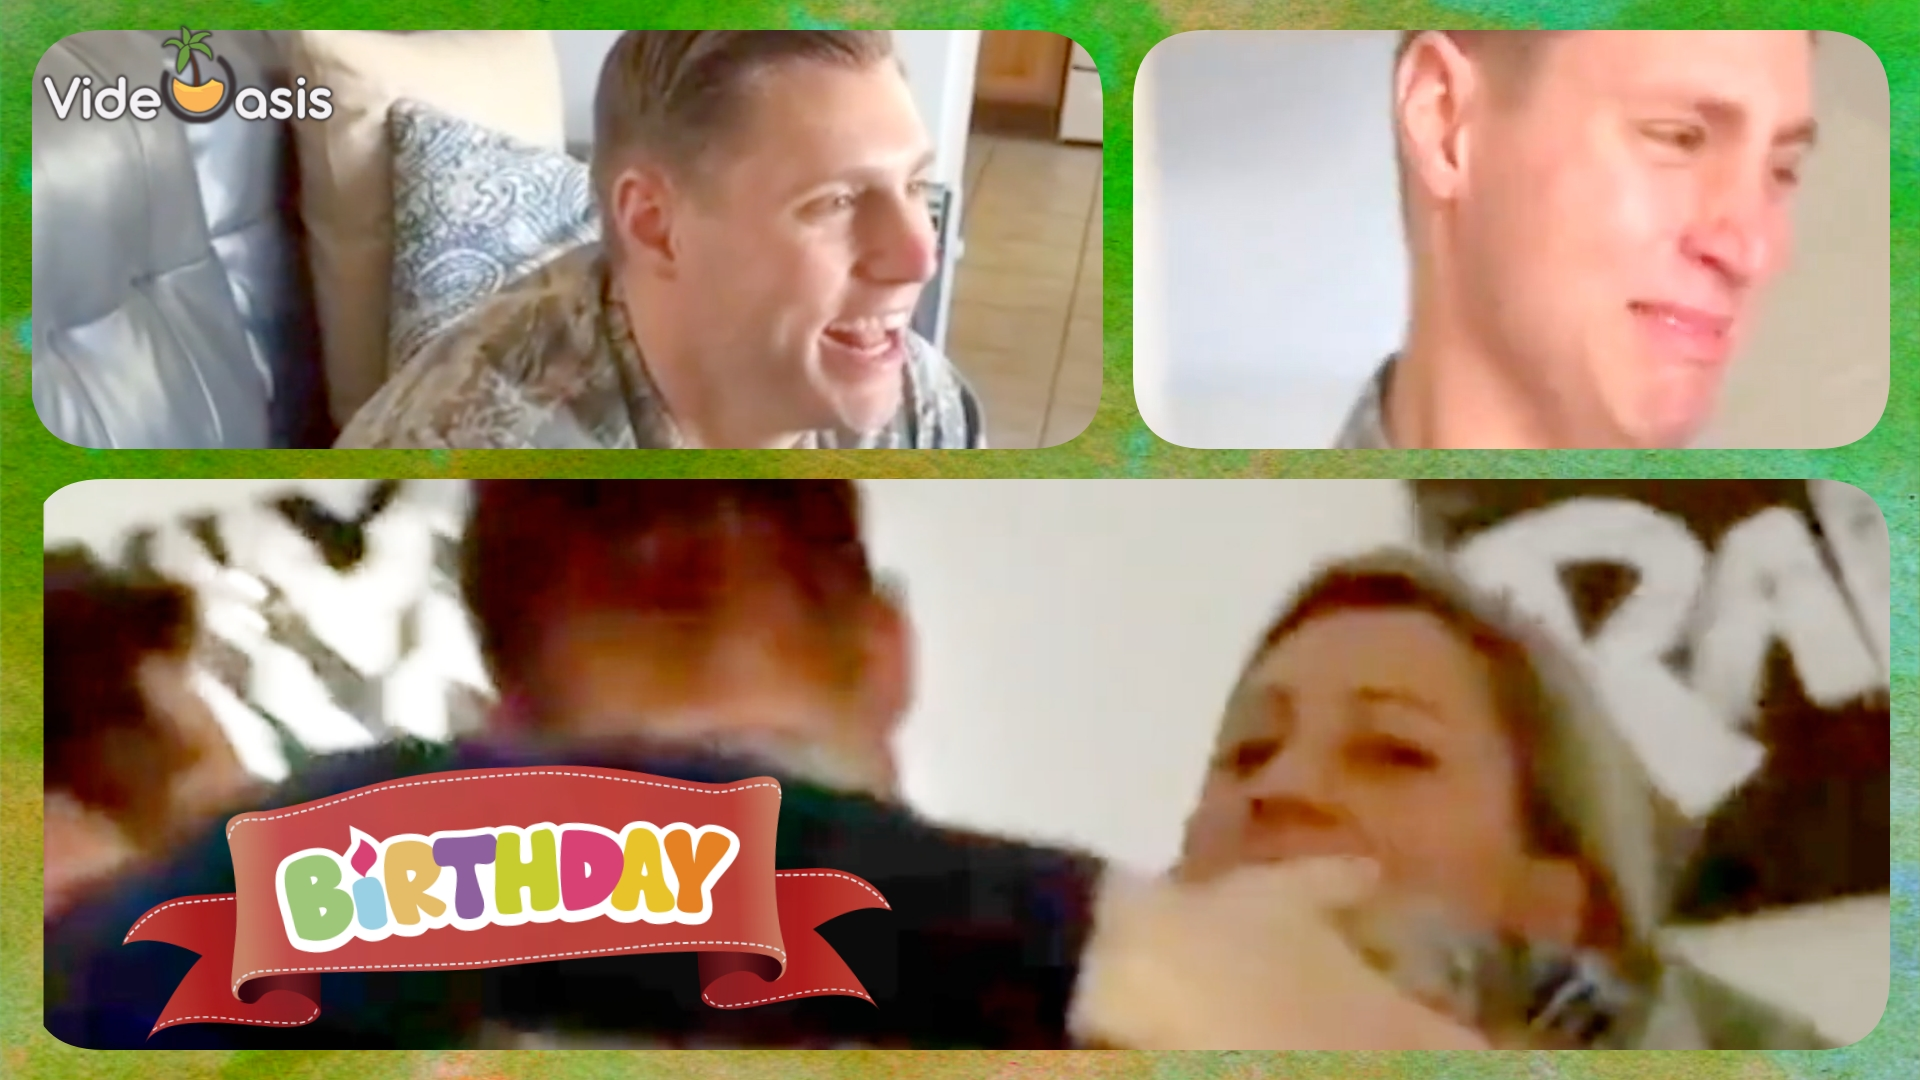 The US serviceman got a big surprise on his birthday |VideOasis